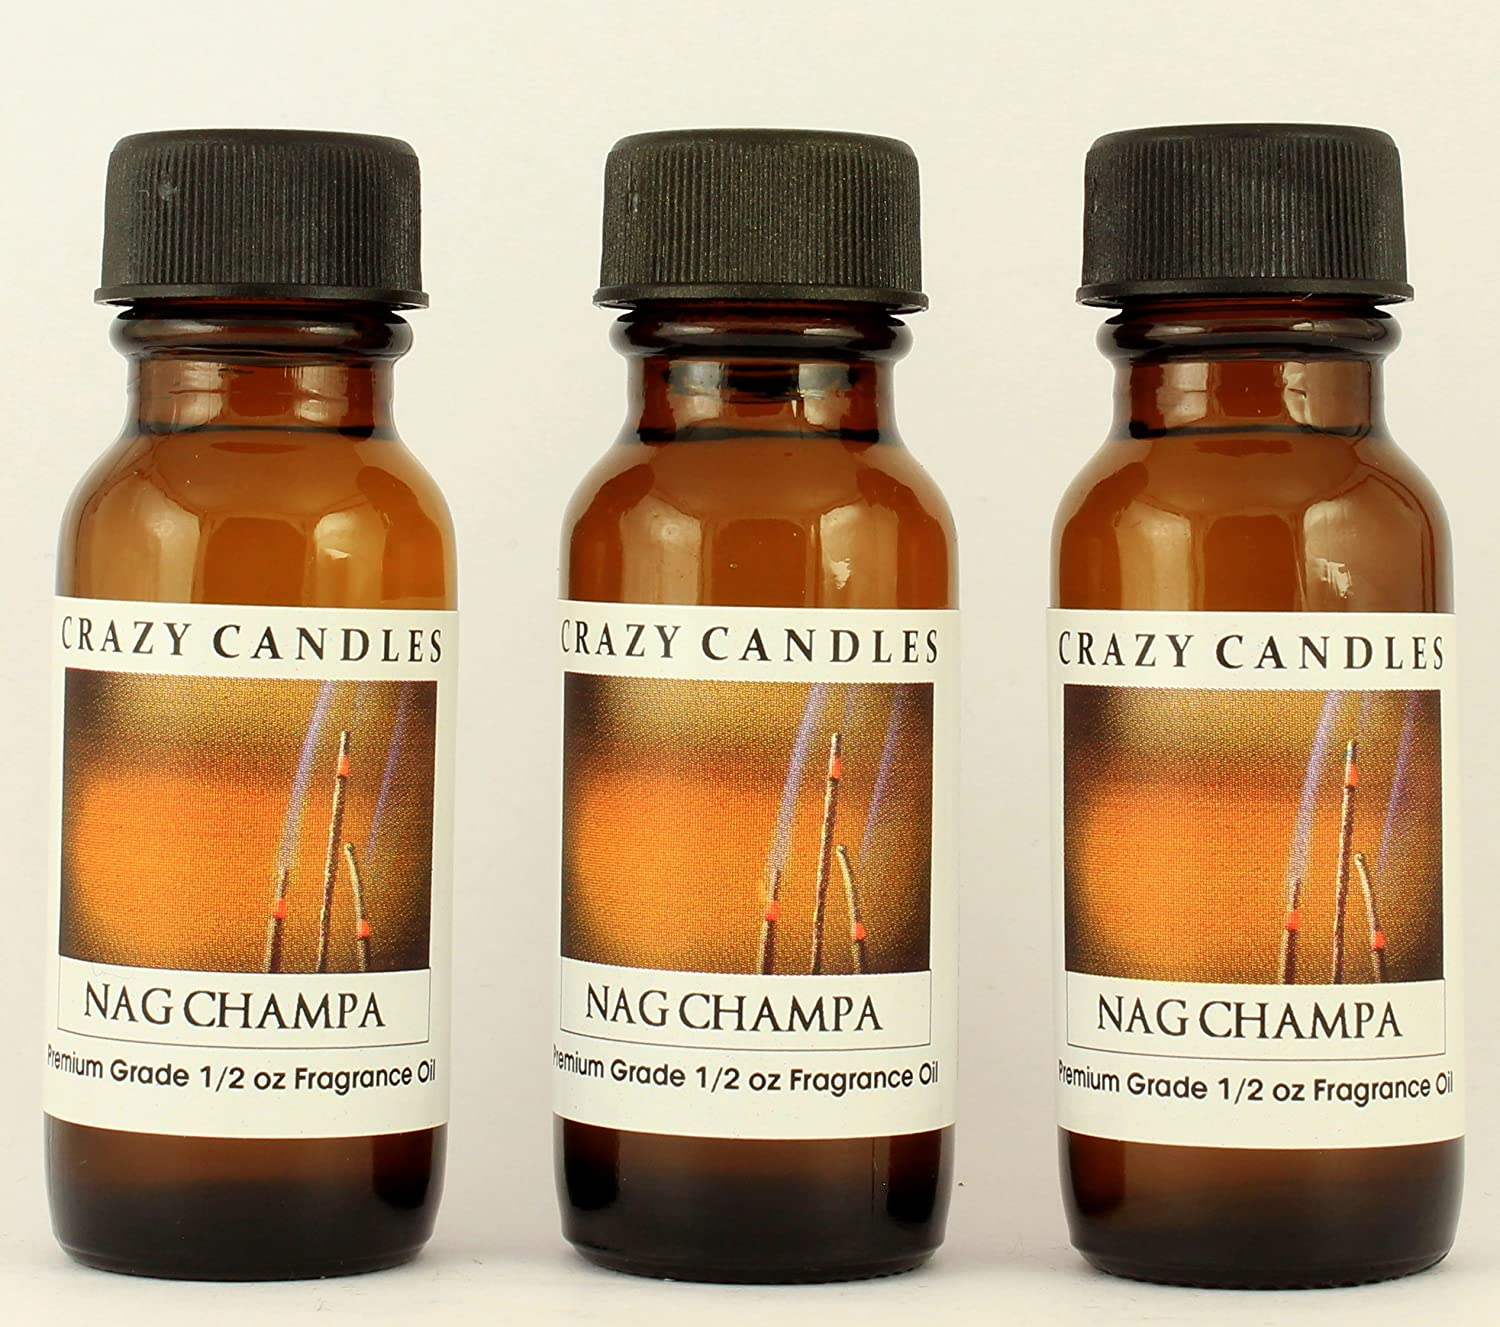 Crazy Candles Nag Champa 3 Bottles 1/2 Fl Oz Each (15ml) Premium Grade Scented Fragrance Oil (Patchouli, Forest, Lush Incense of India)